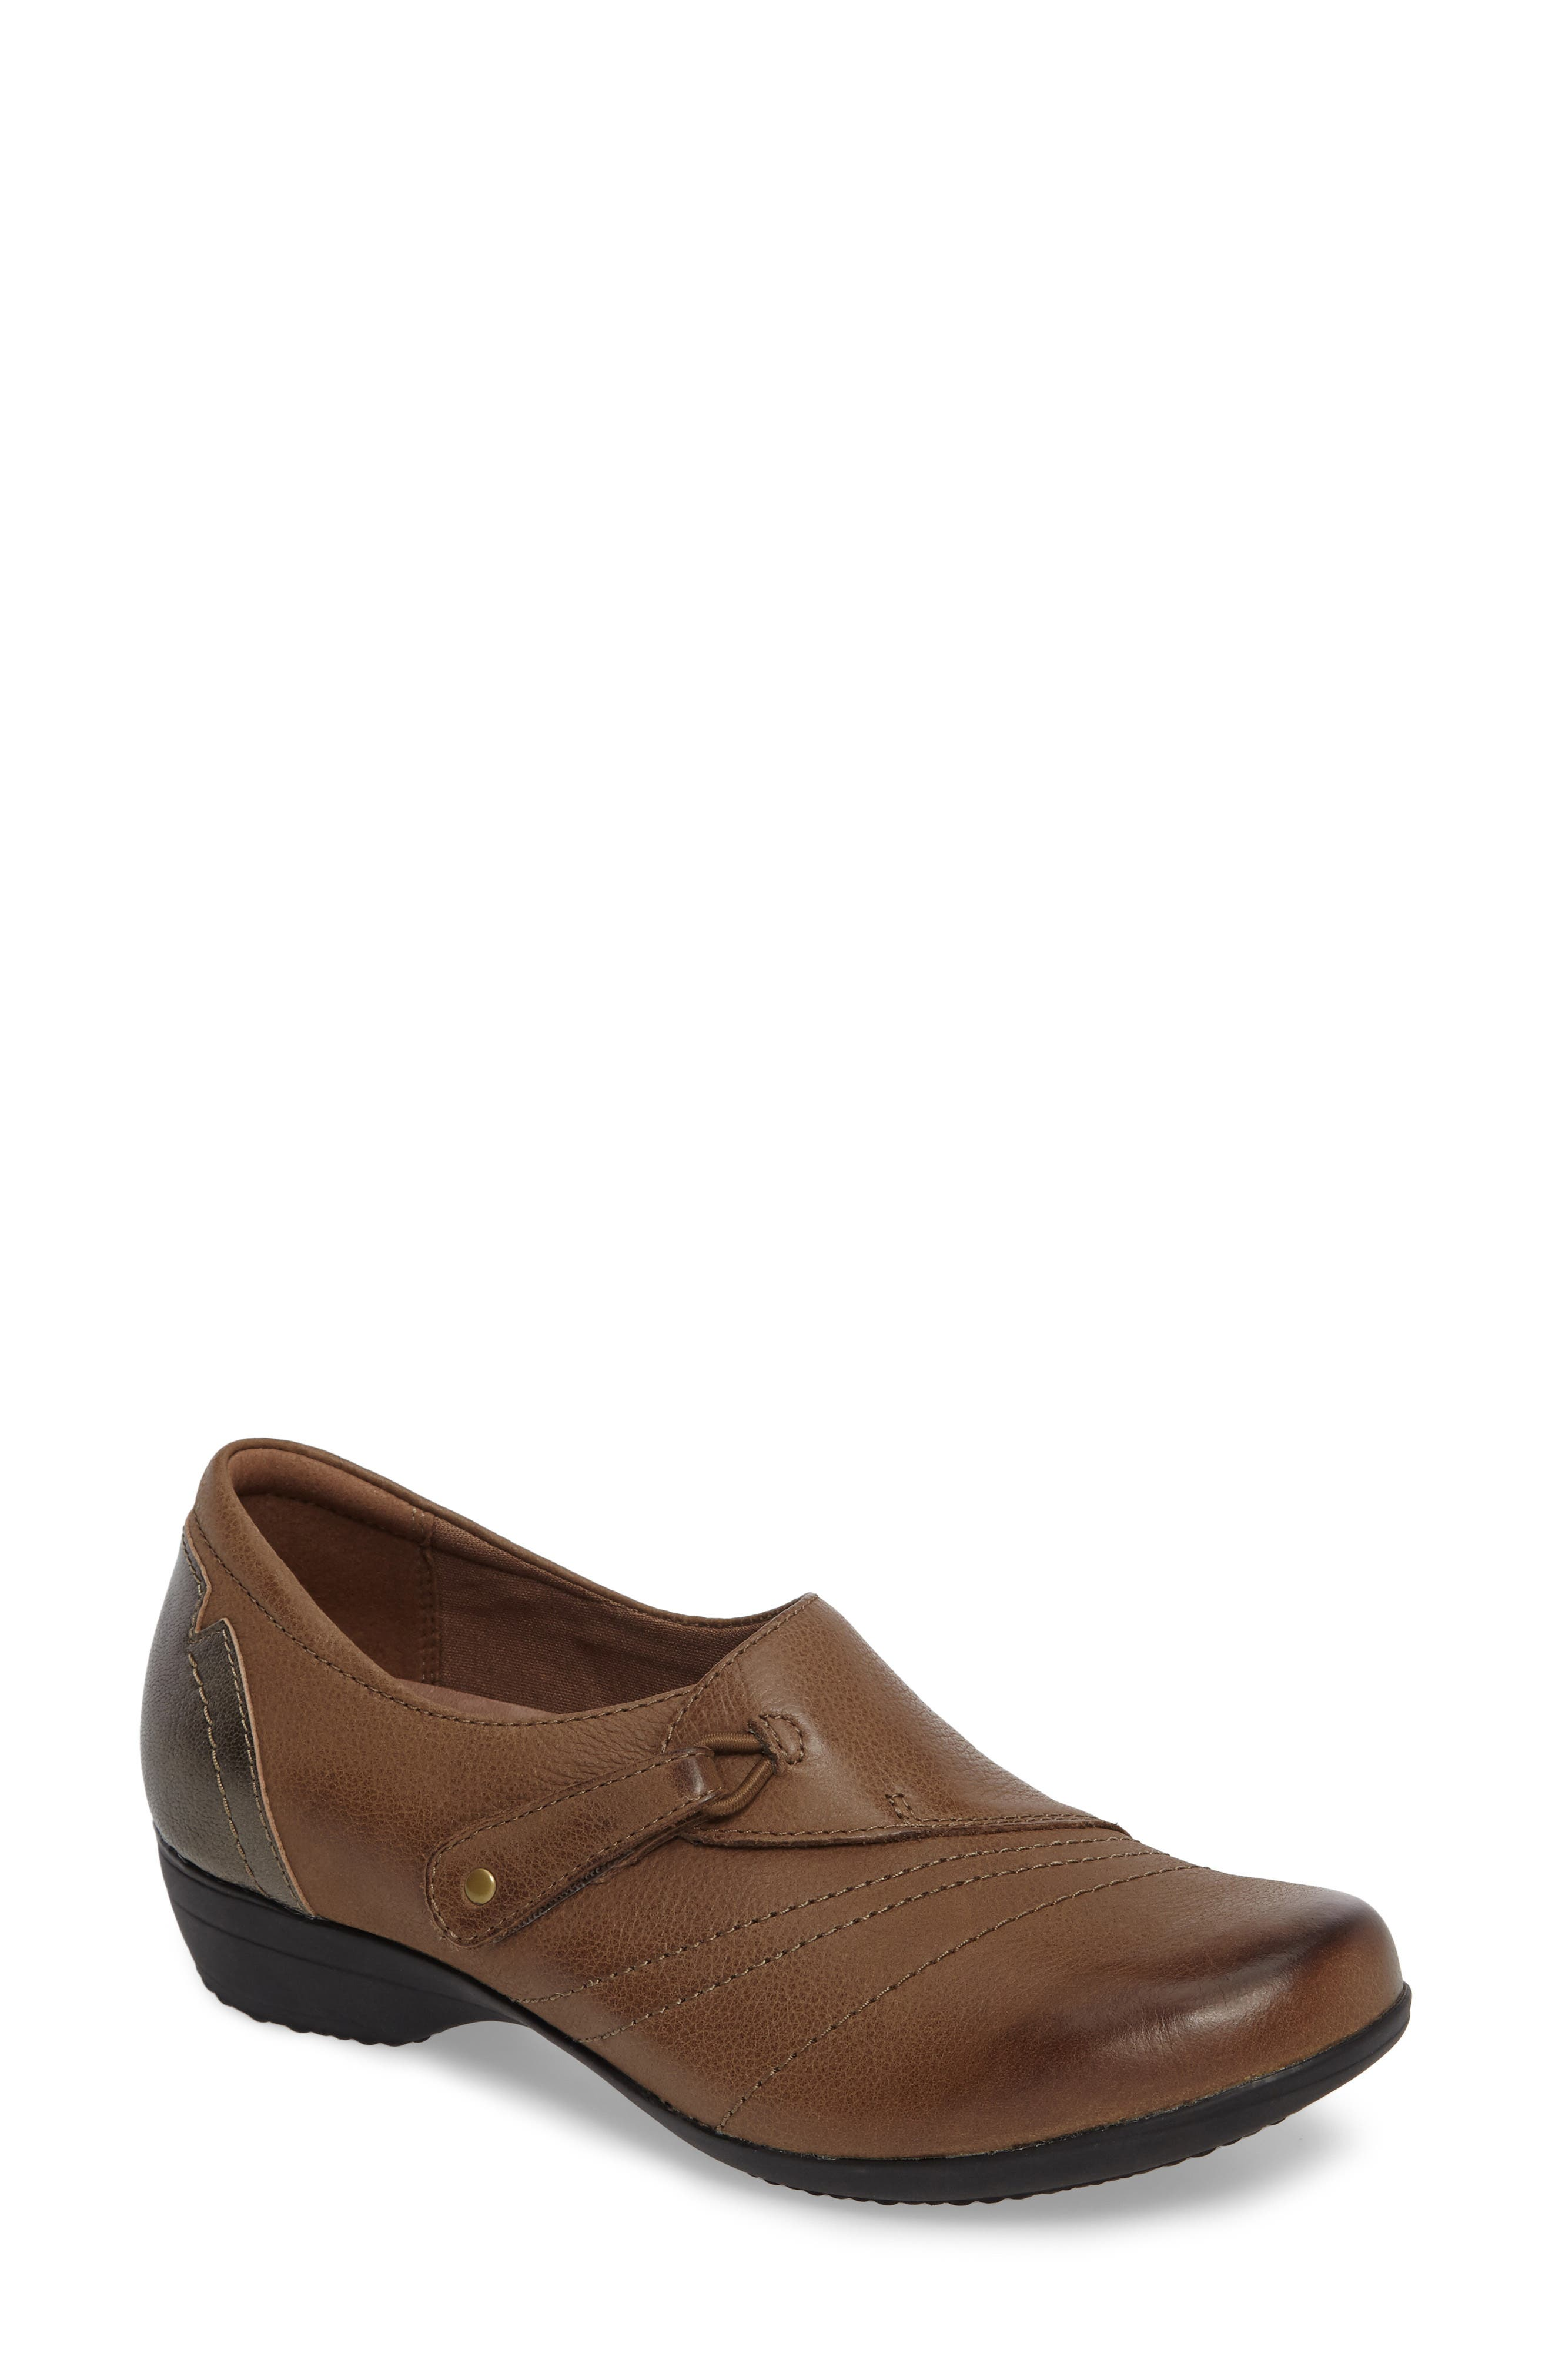 Franny Loafer,                         Main,                         color, Taupe Burnished Nappa Leather